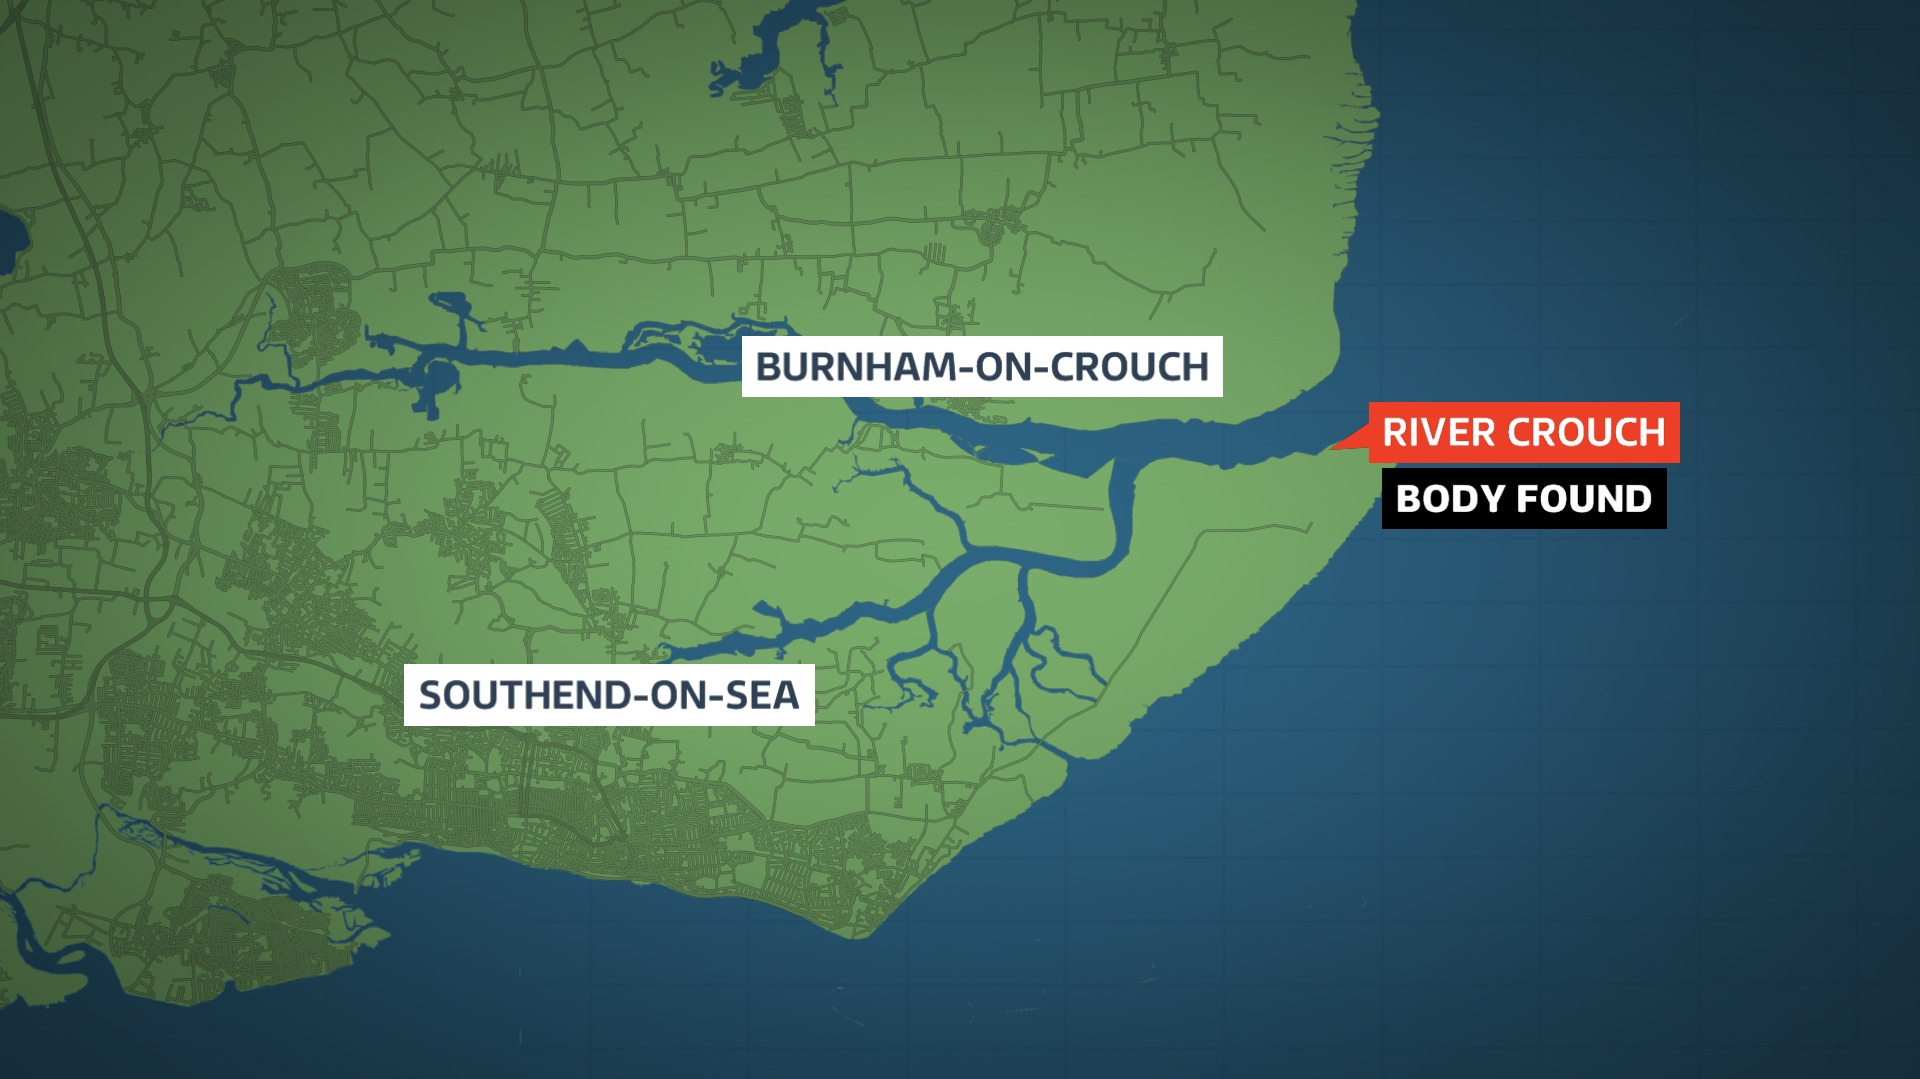 A man's body has been found in the River Crouch near Burnham in Essex.Polic